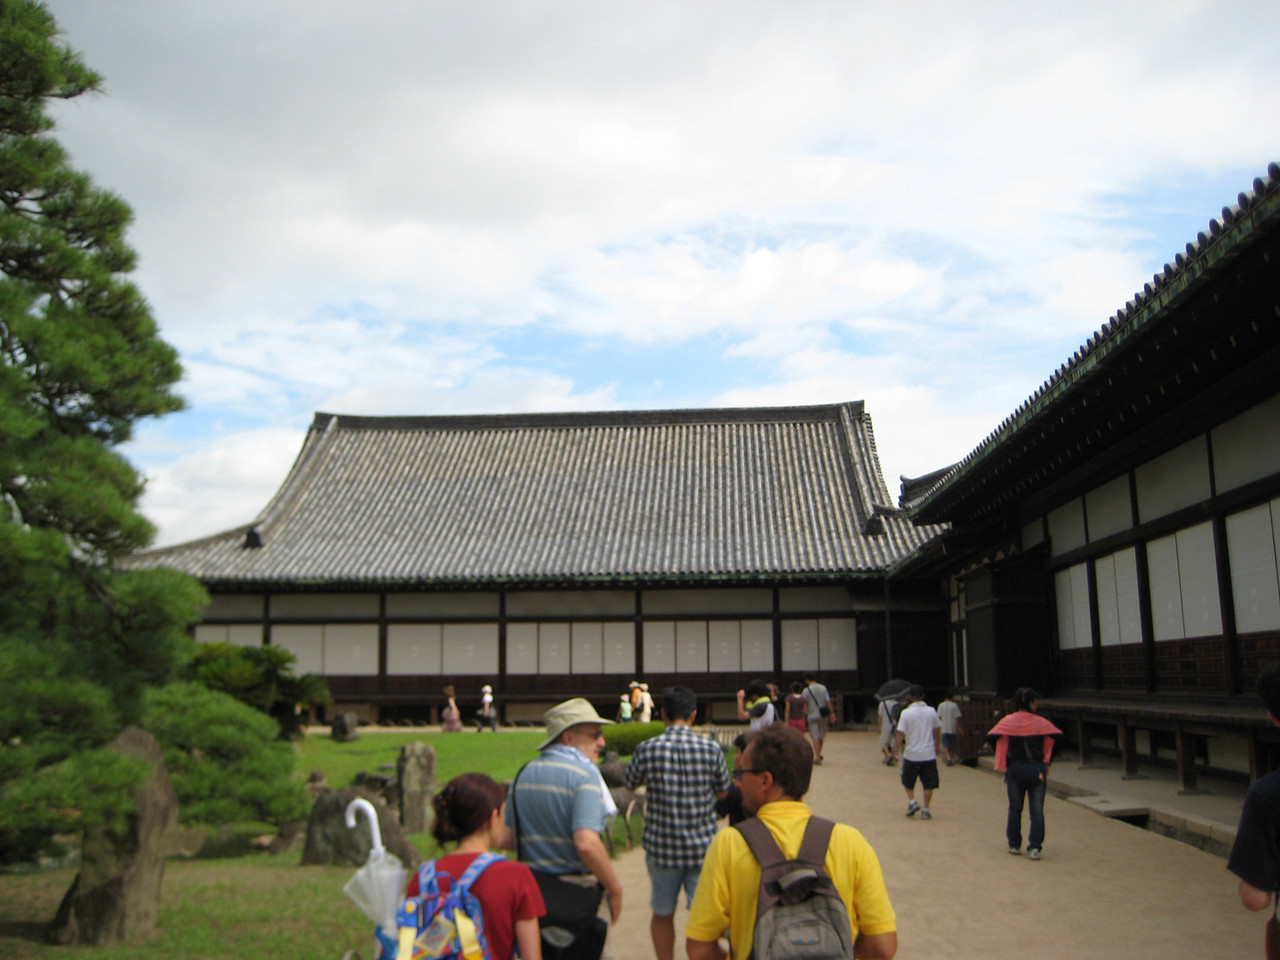 Ahead of us is the Kuro-shoin room of the Ninomaru Palace which was used for the shogun's private meeting quarters. To the right is the Ohiroma room where the shogun would hold public meetings with the feudal lords.